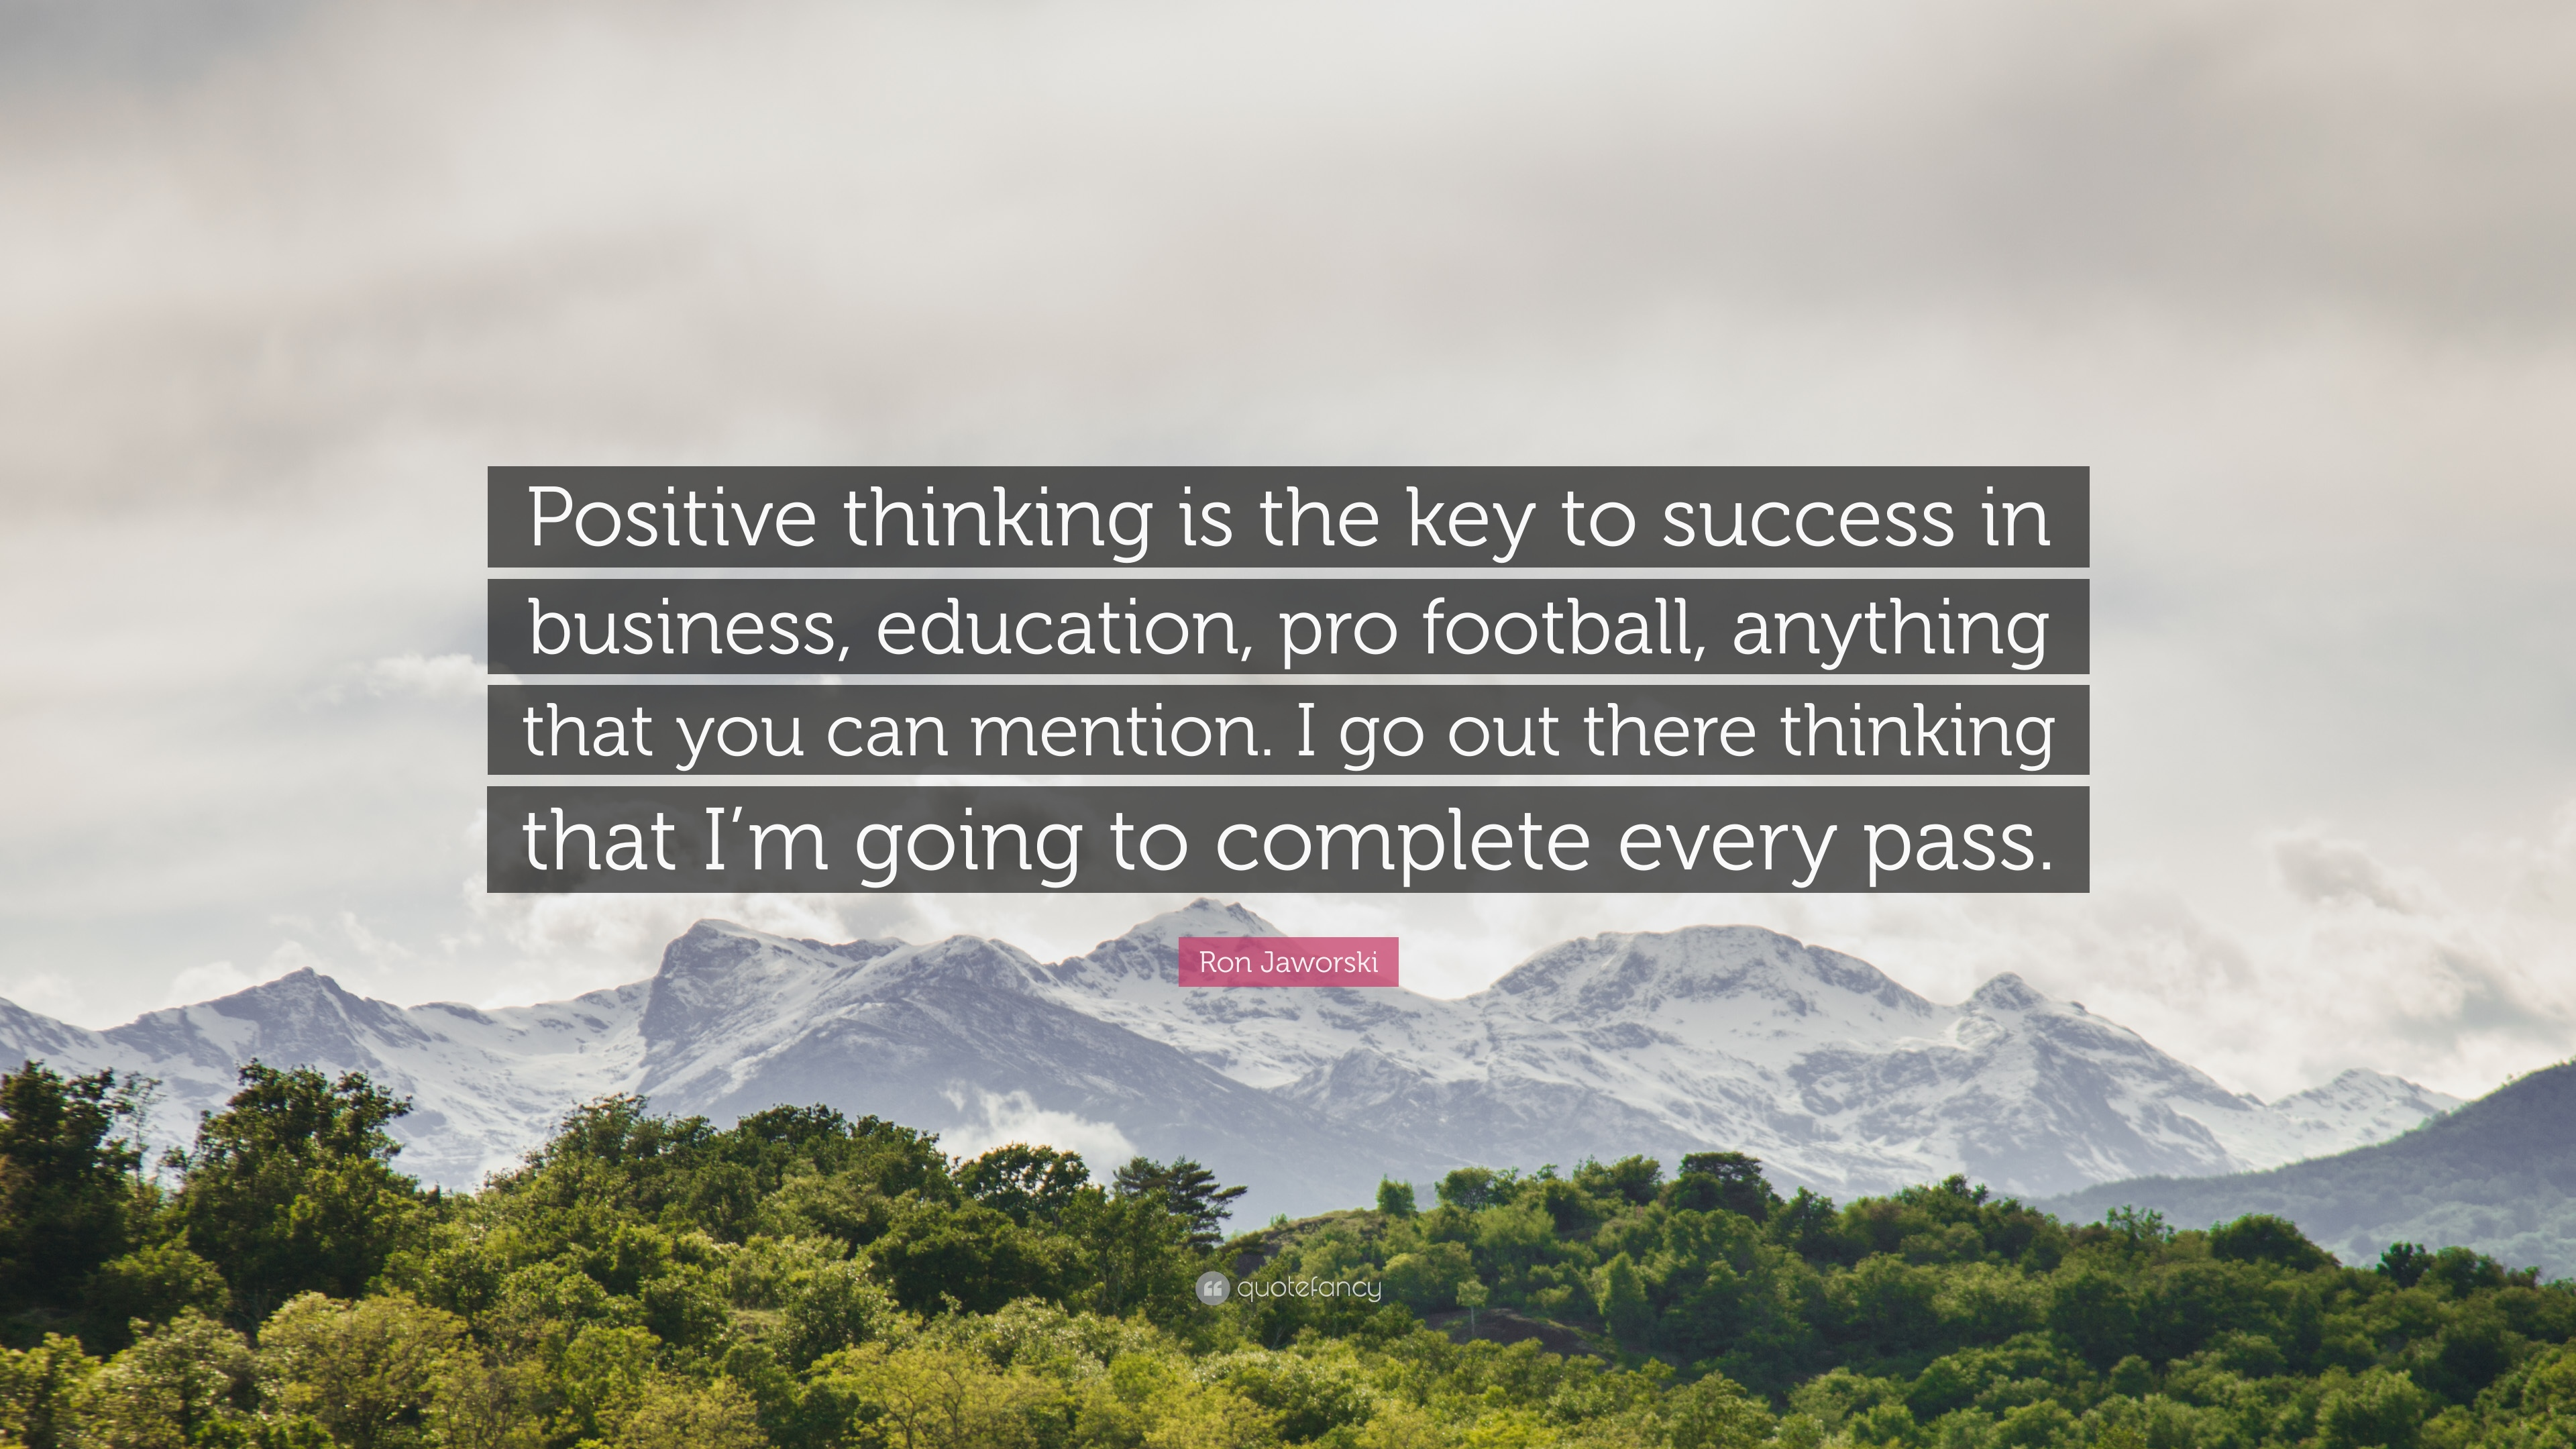 ron jaworski quote positive thinking is the key to success in ron jaworski quote positive thinking is the key to success in business education